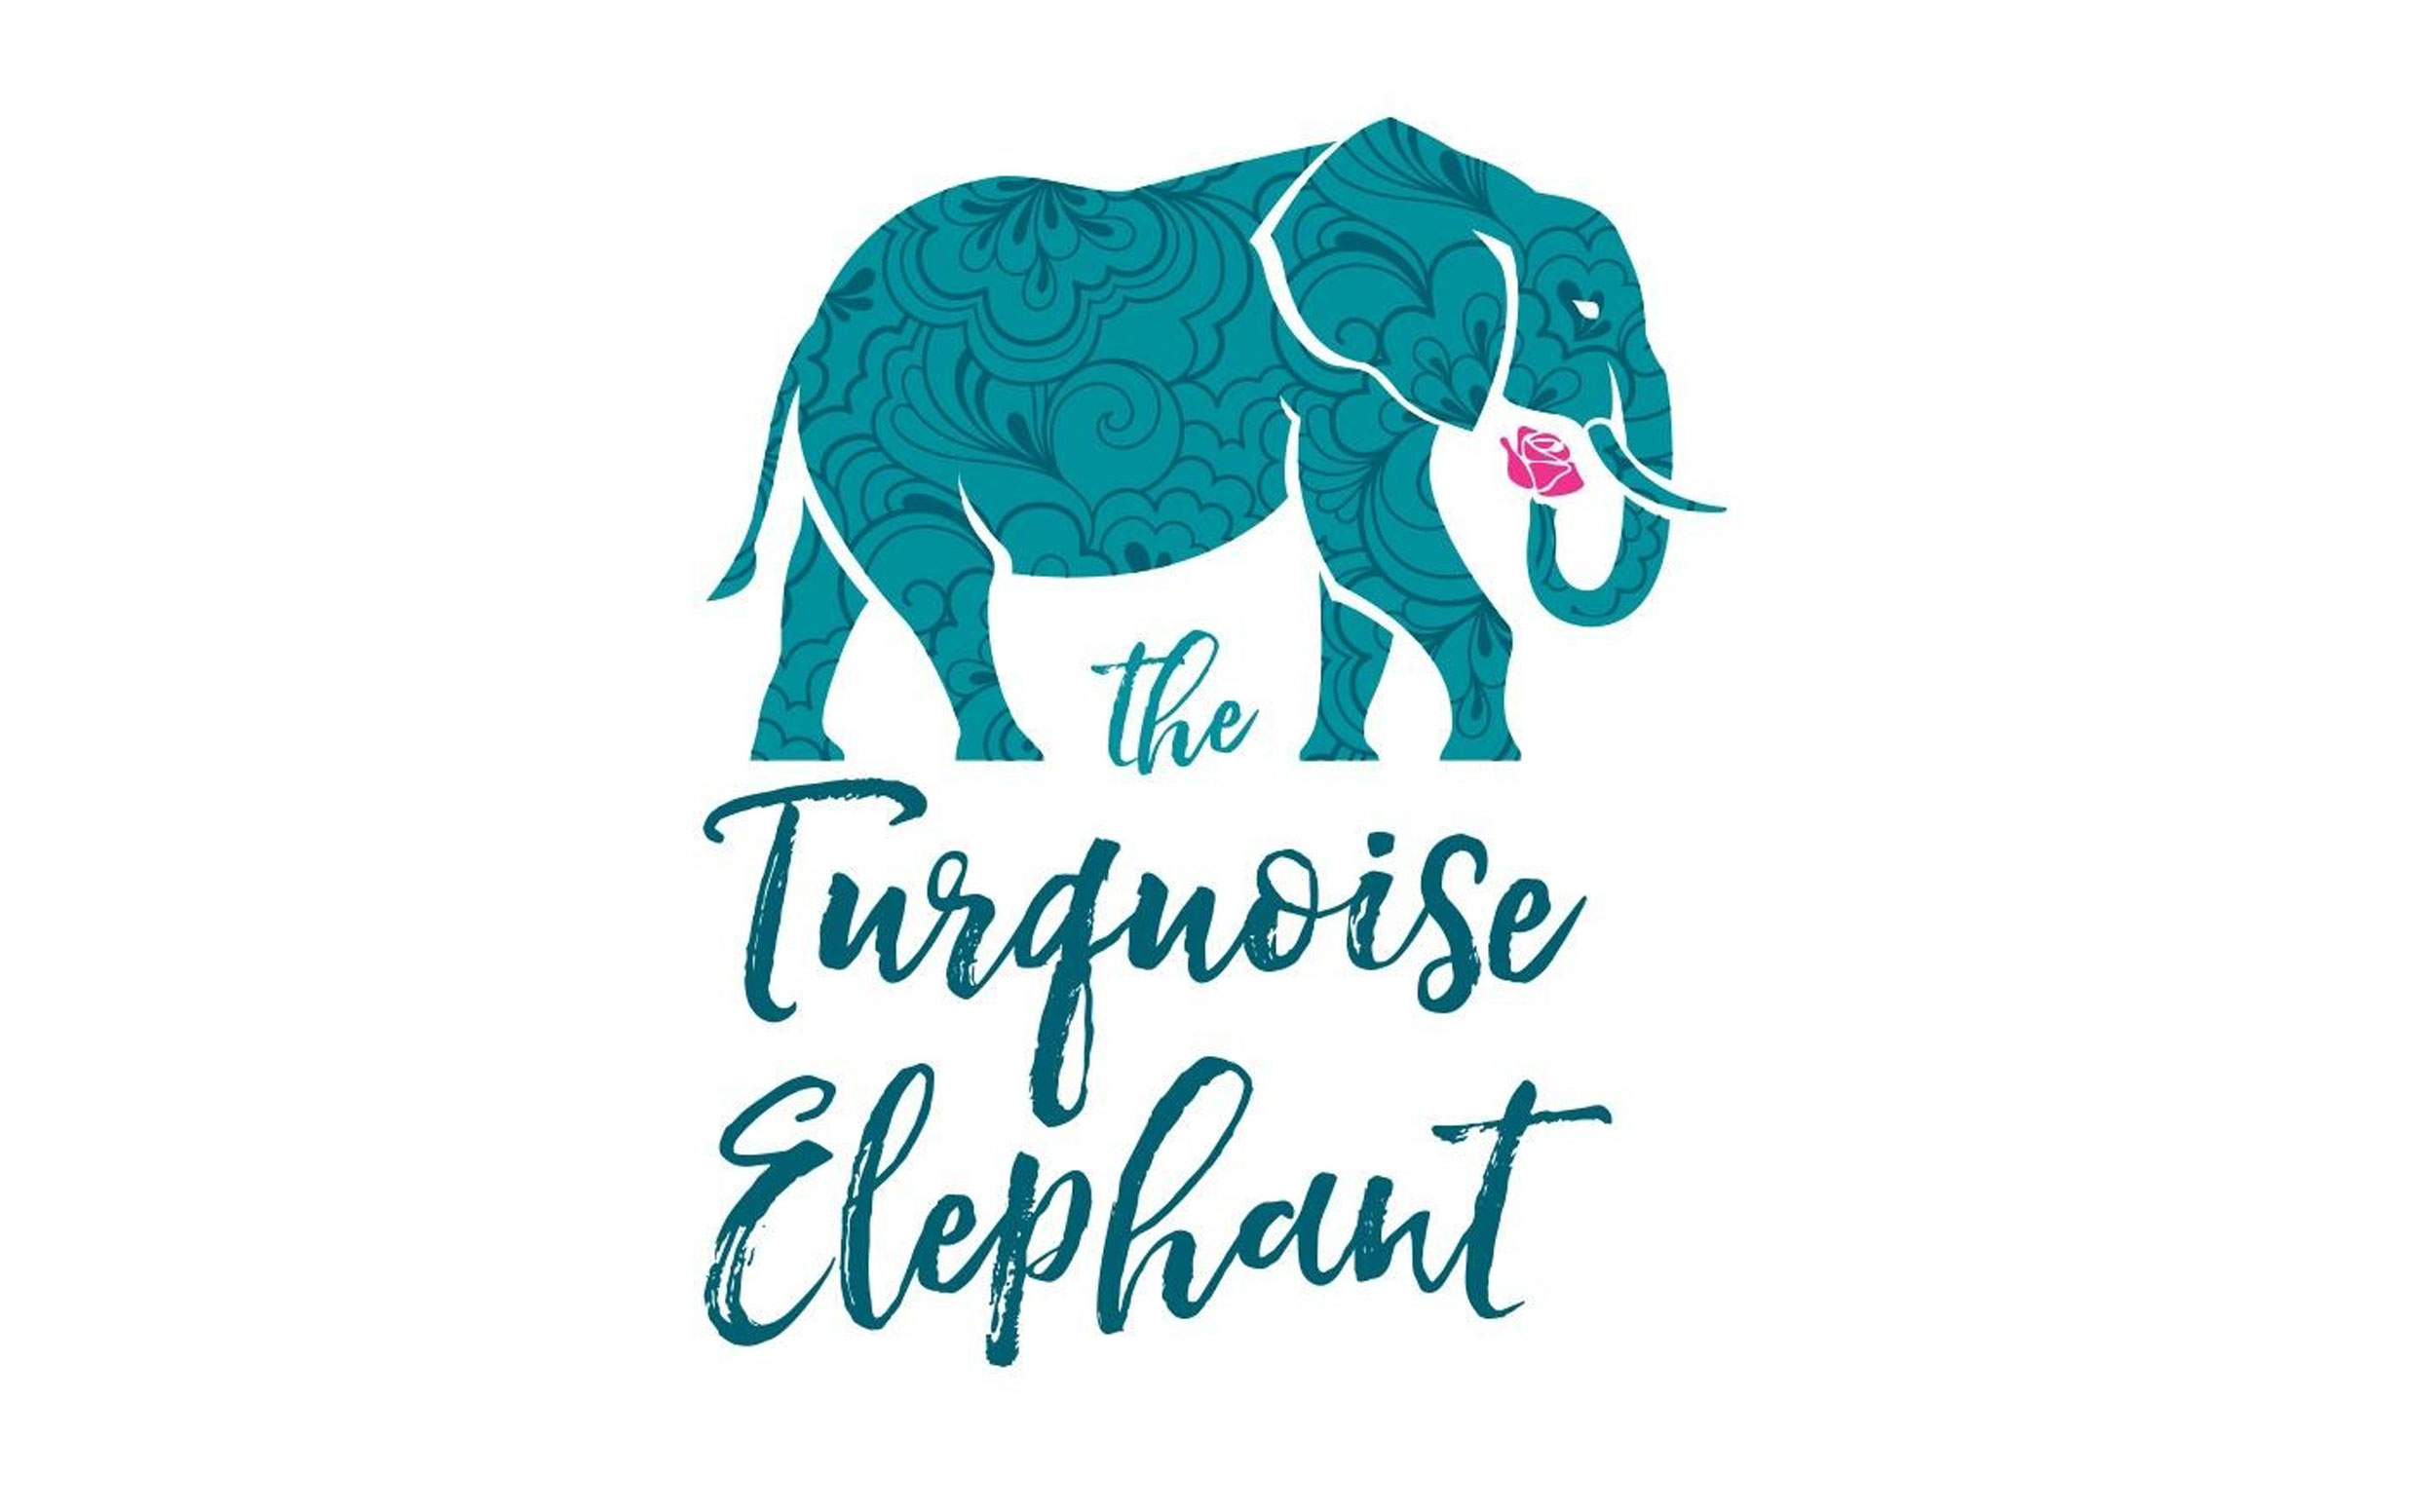 The Turquiose Elephant